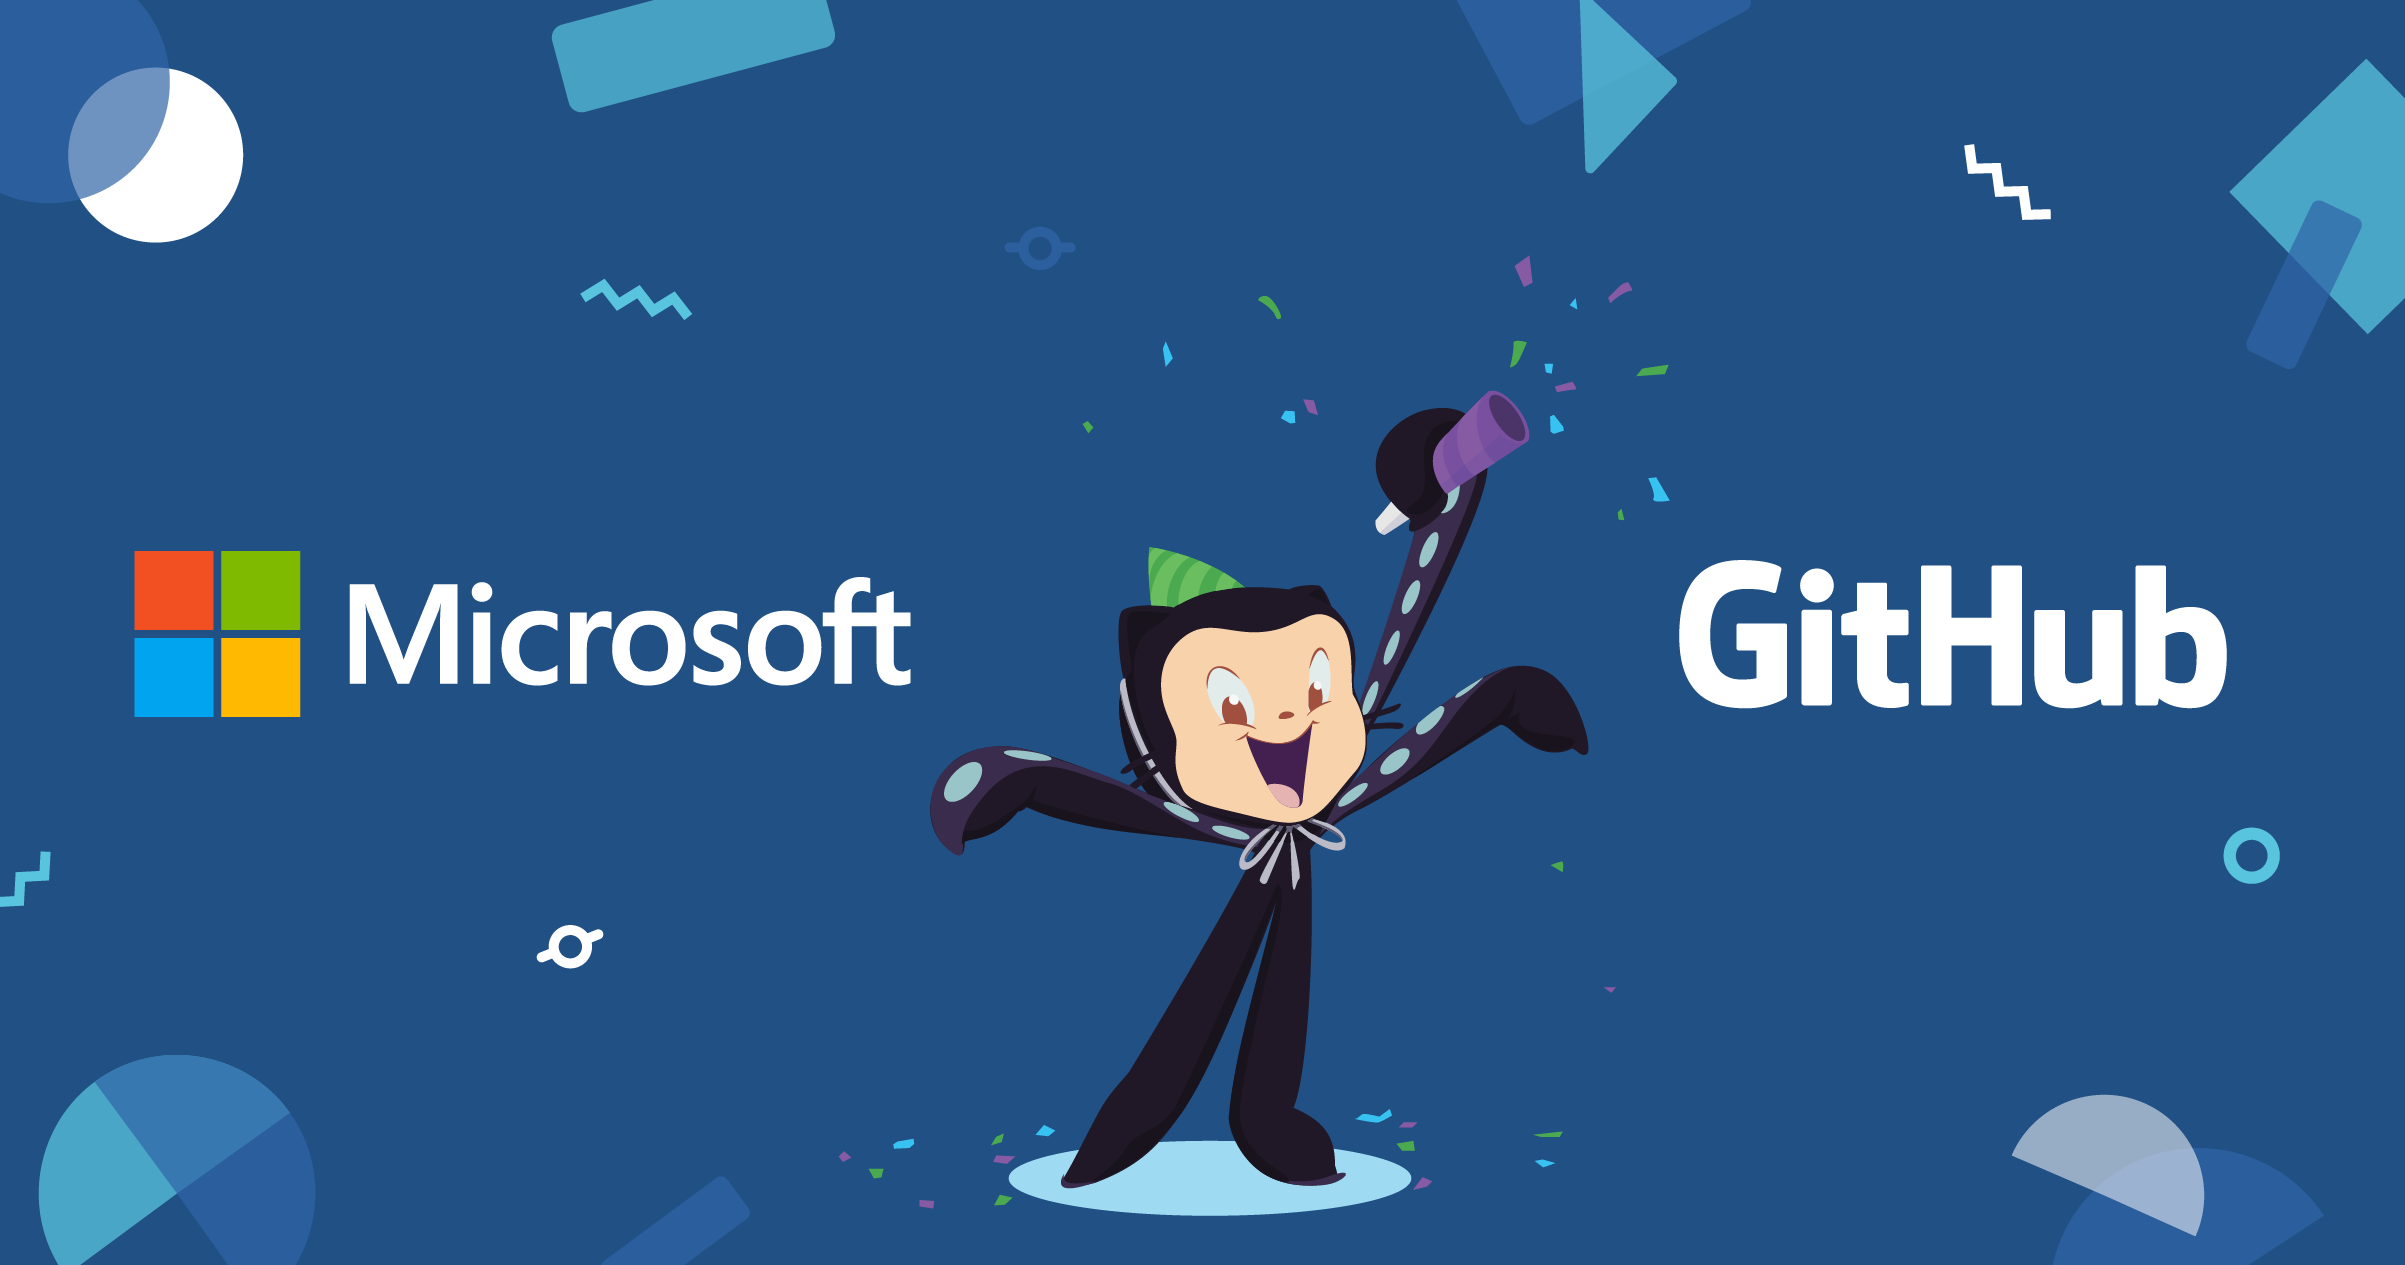 https://cdn.jasongaylord.com/images/2018/10/27/Microsoft_Acquires_GitHub.png